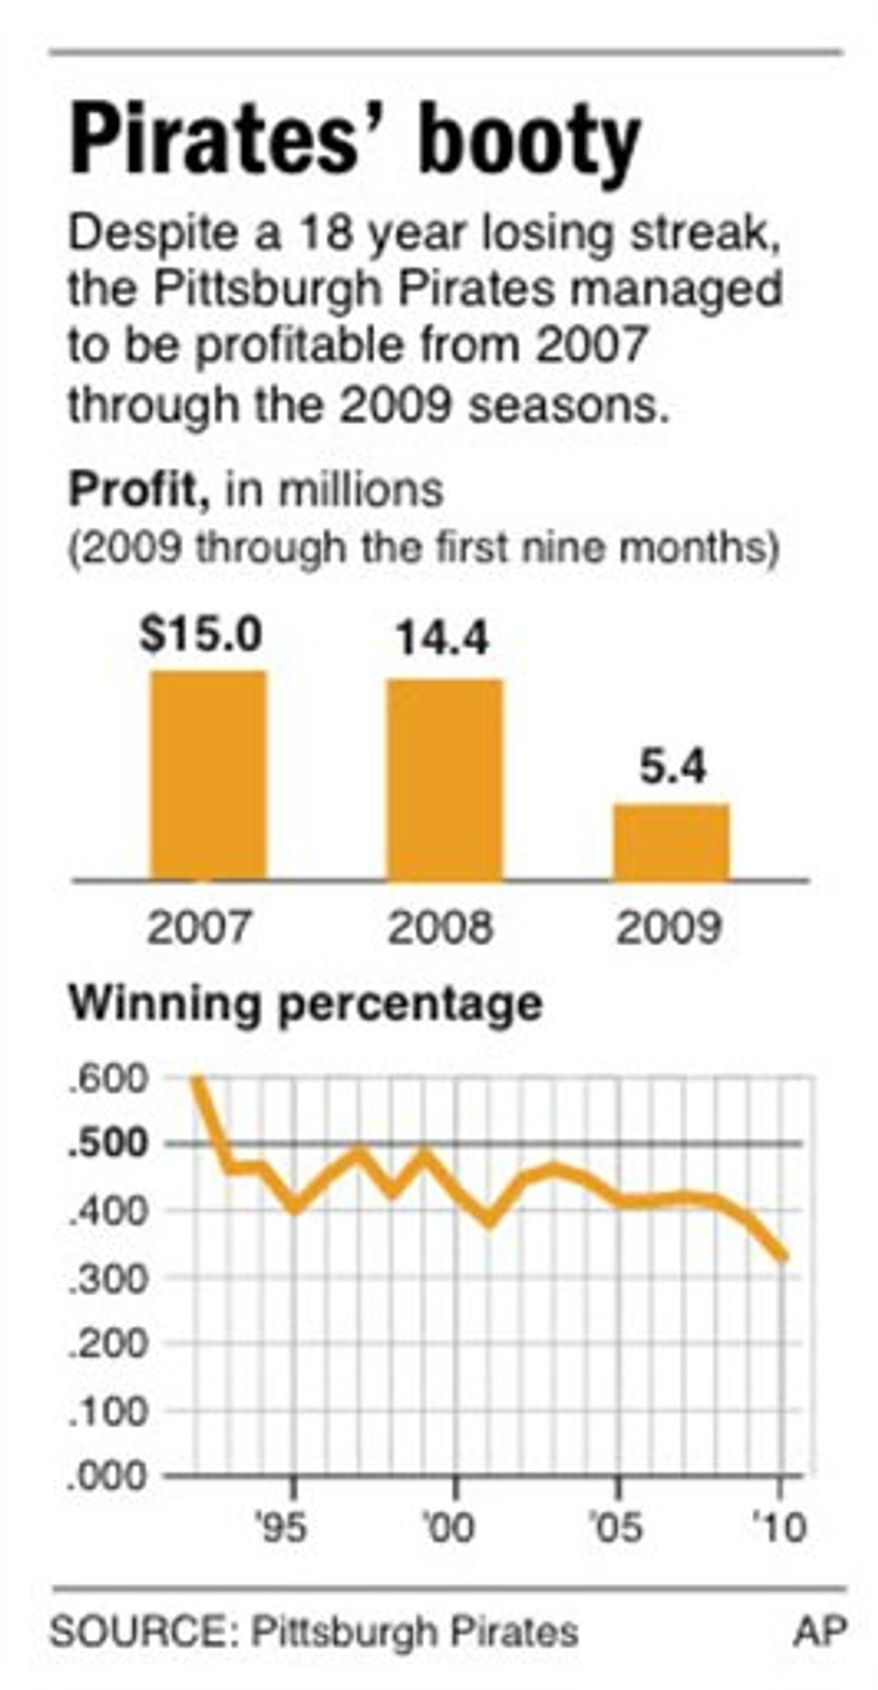 Chart shows the Pittsburgh Pirates team profits (2007-2009) and winning percentage since 1992.